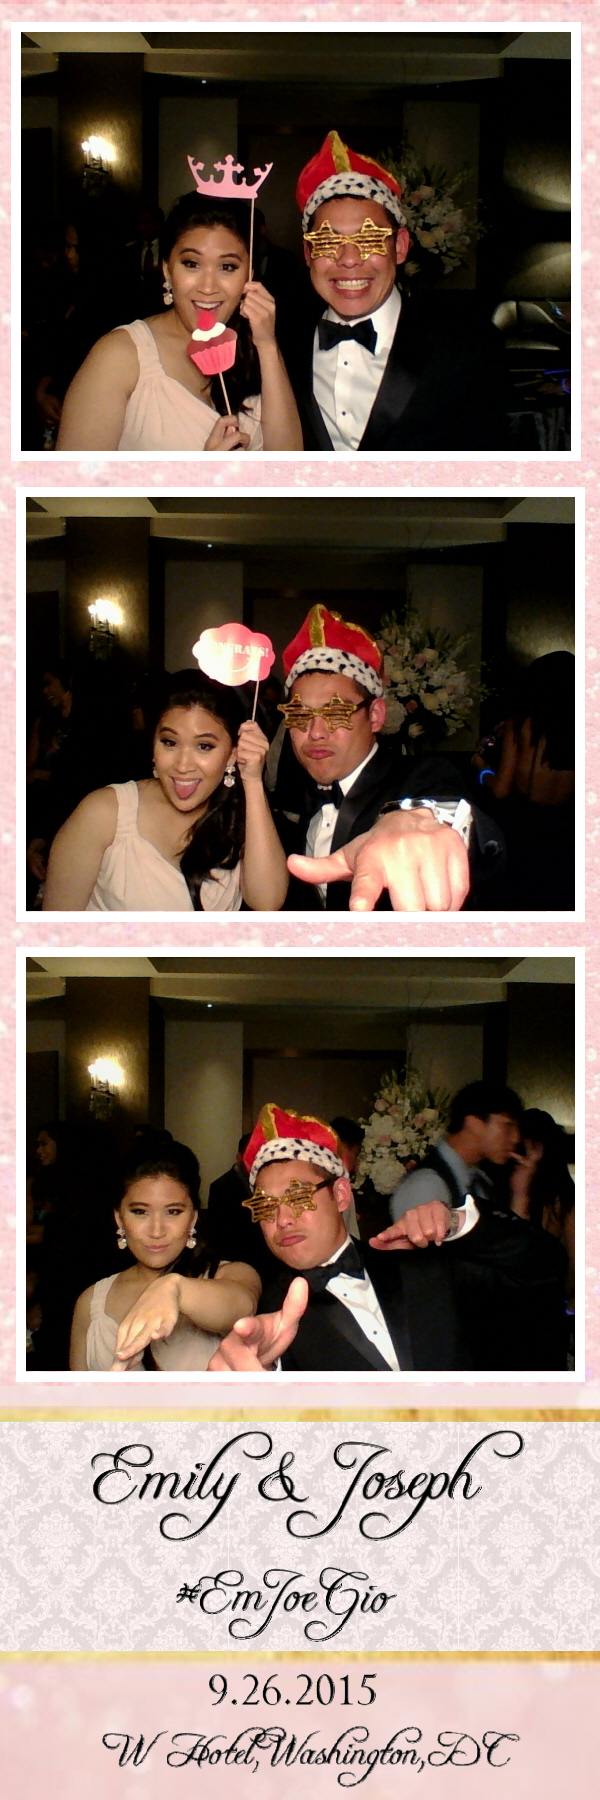 Guest House Events Photo Booth E&J (17).jpg